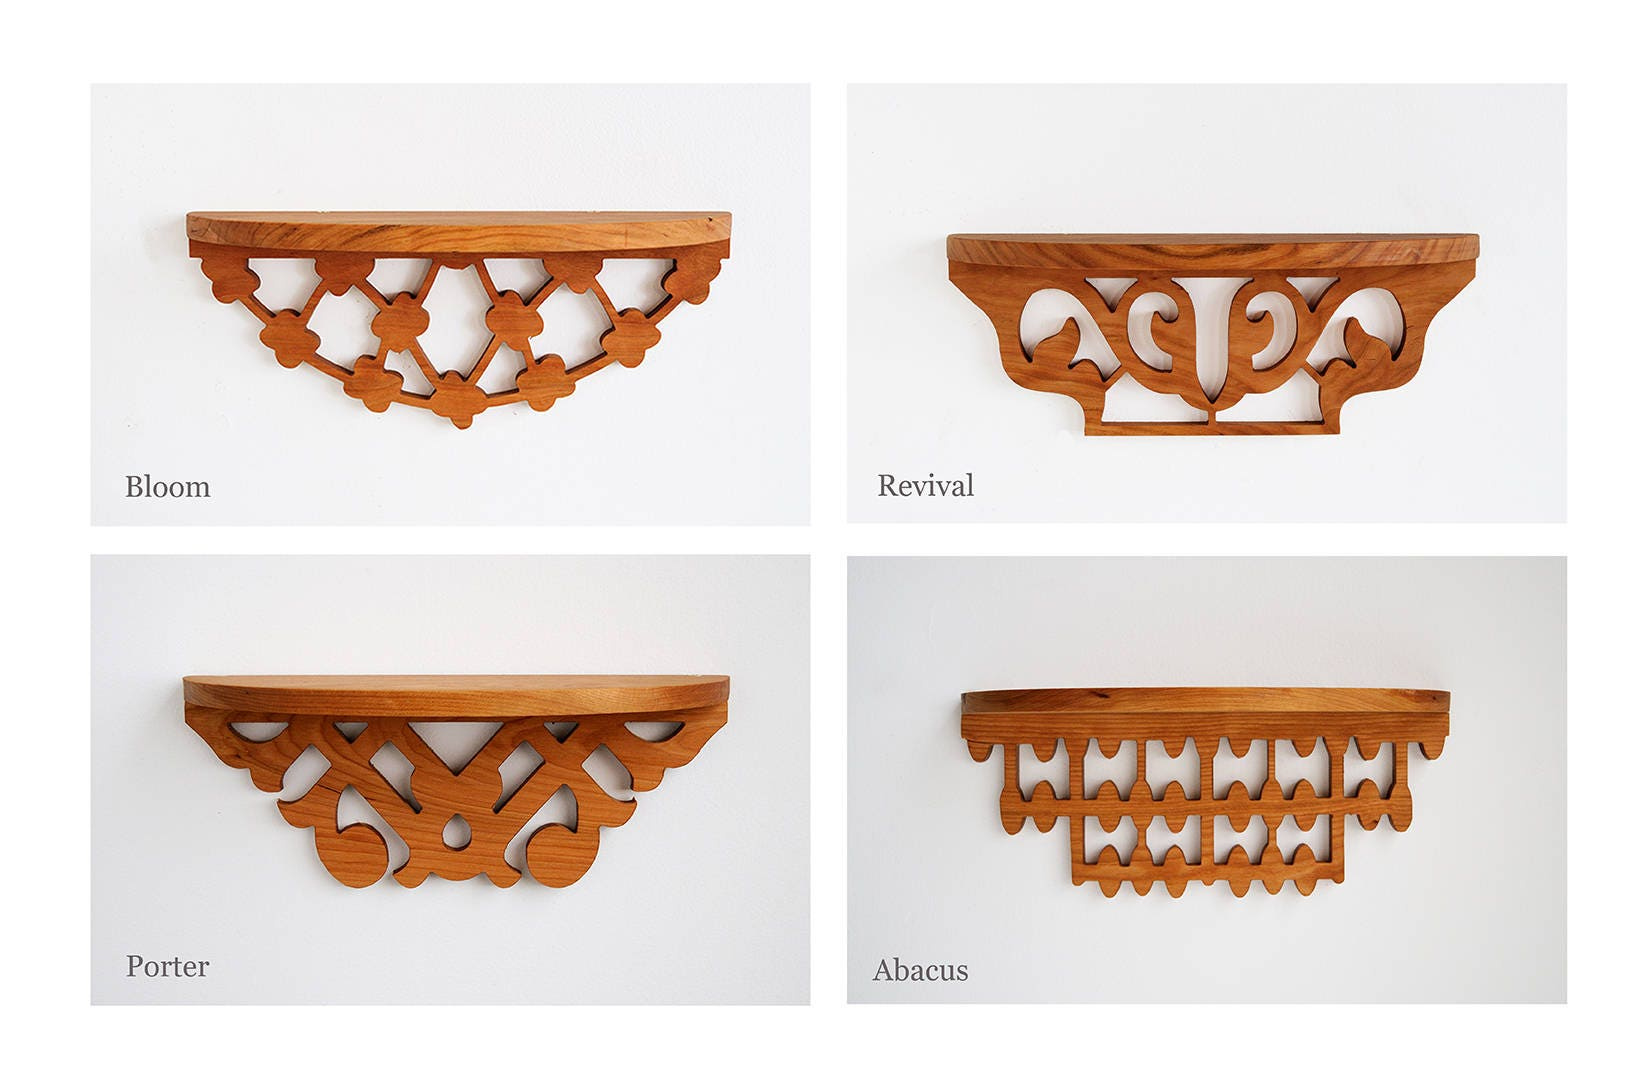 Decorative Shelf for the bathroom vanity, bedroom, living room, or ...